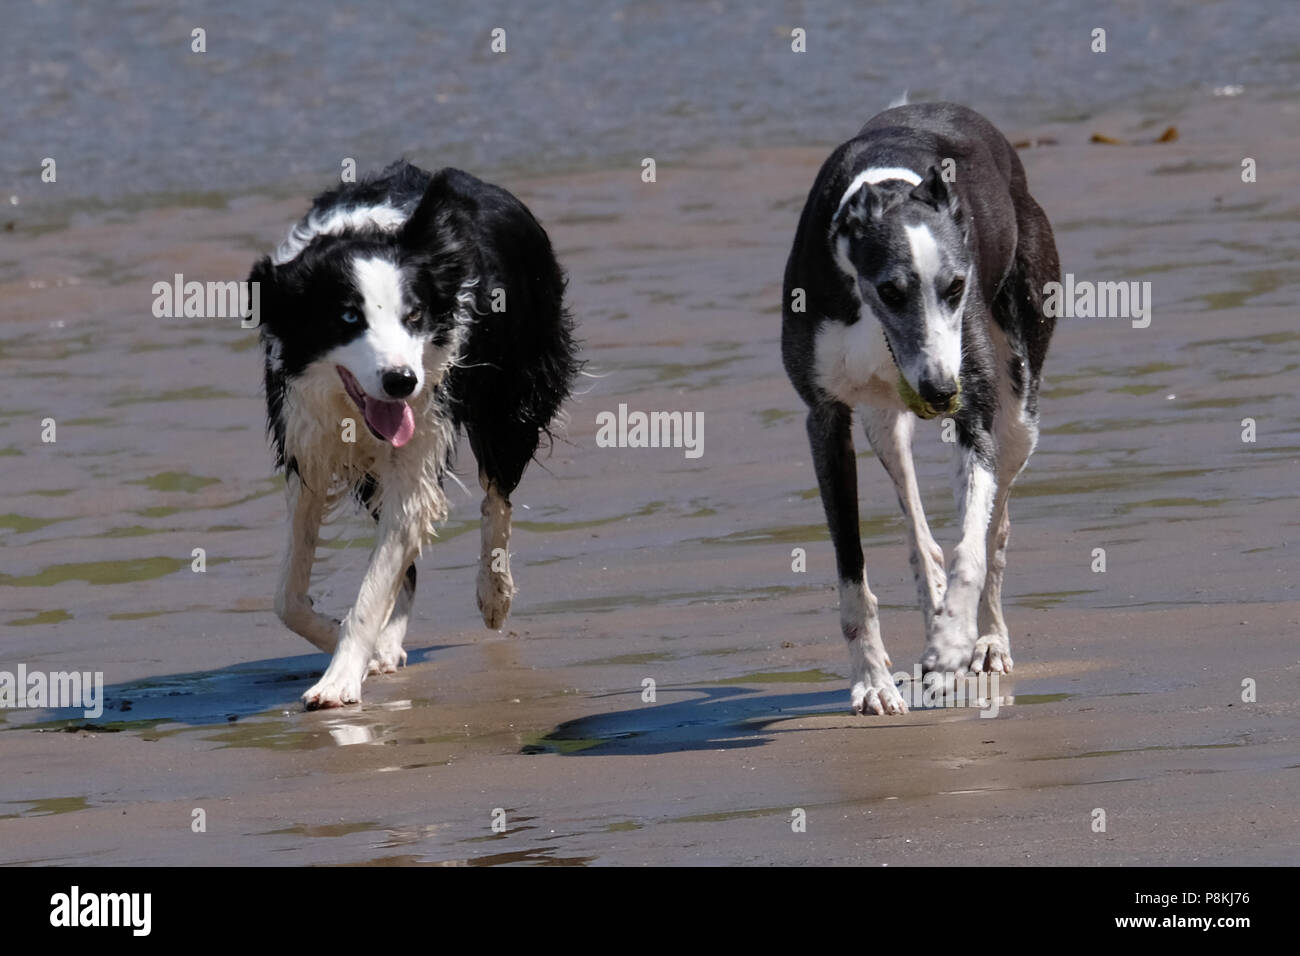 Two dogs running towards the camera whilst having fun on the sandy beach of North Bay, Scarborough - Stock Image